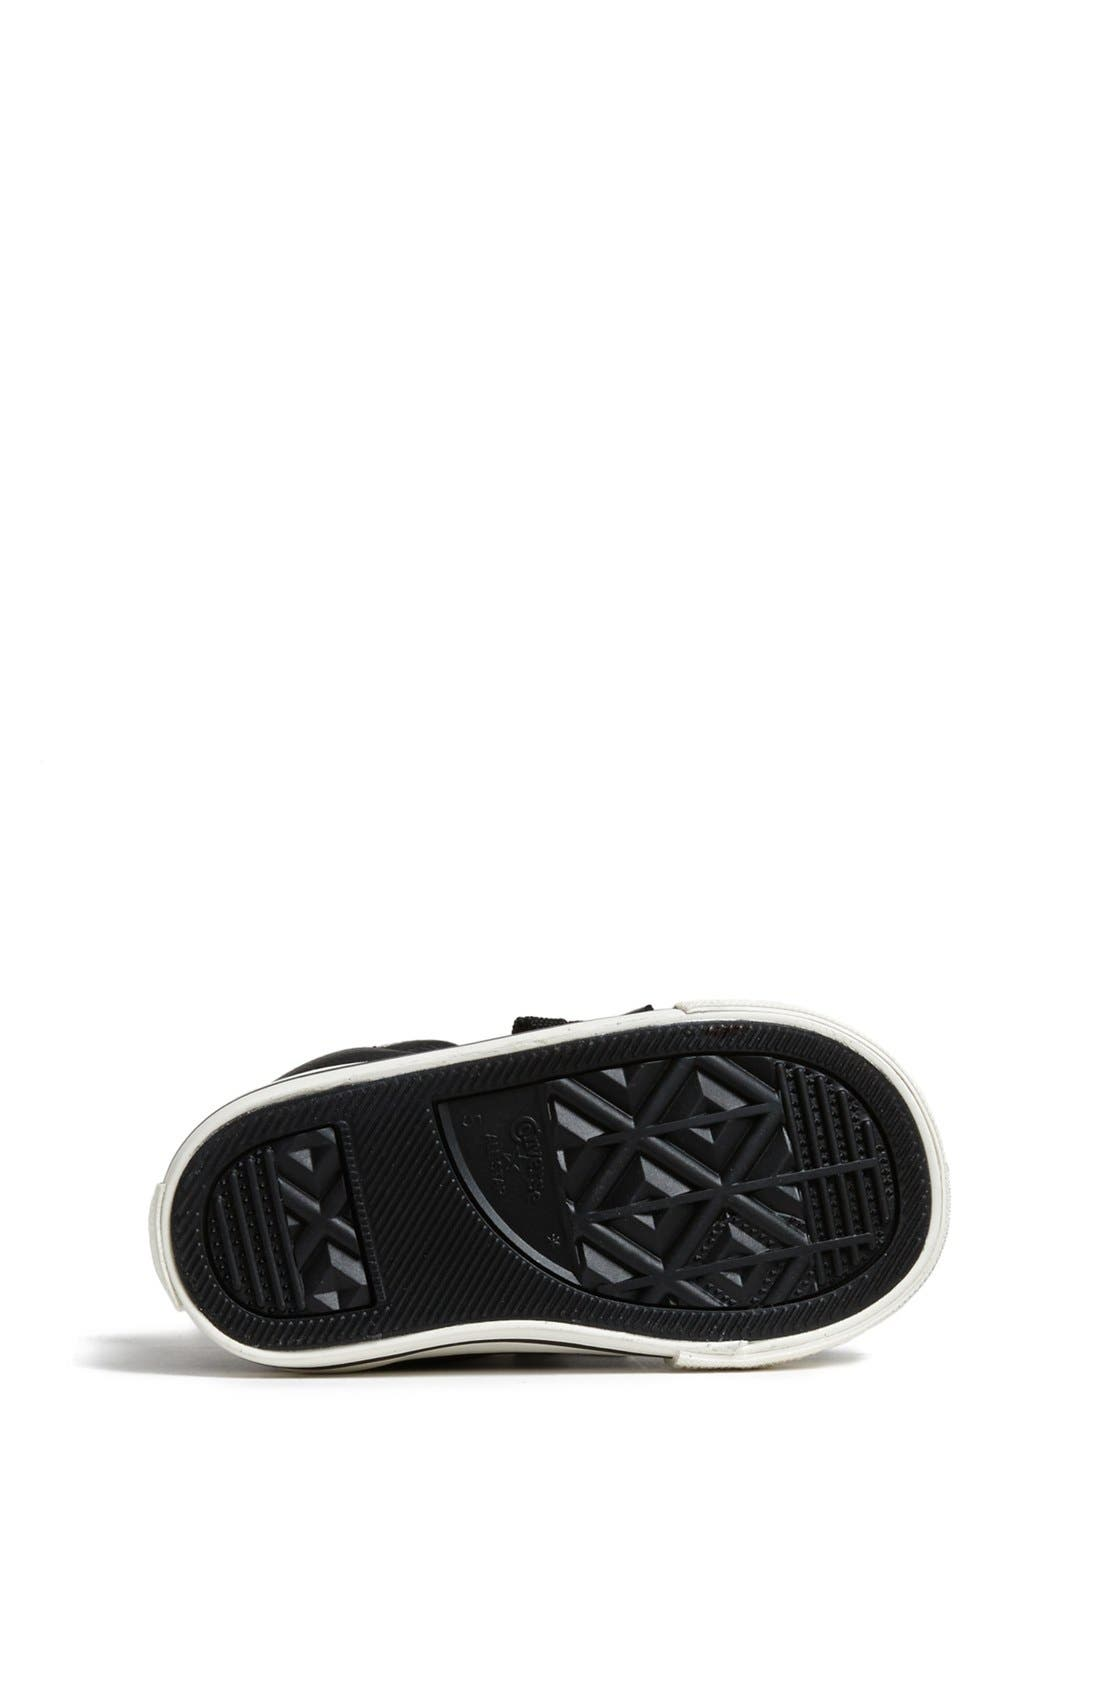 Chuck Taylor<sup>®</sup> All Star<sup>®</sup> 'CT AS Street' Leather Slip-On Sneaker,                             Alternate thumbnail 4, color,                             Black/ Tidal Foam